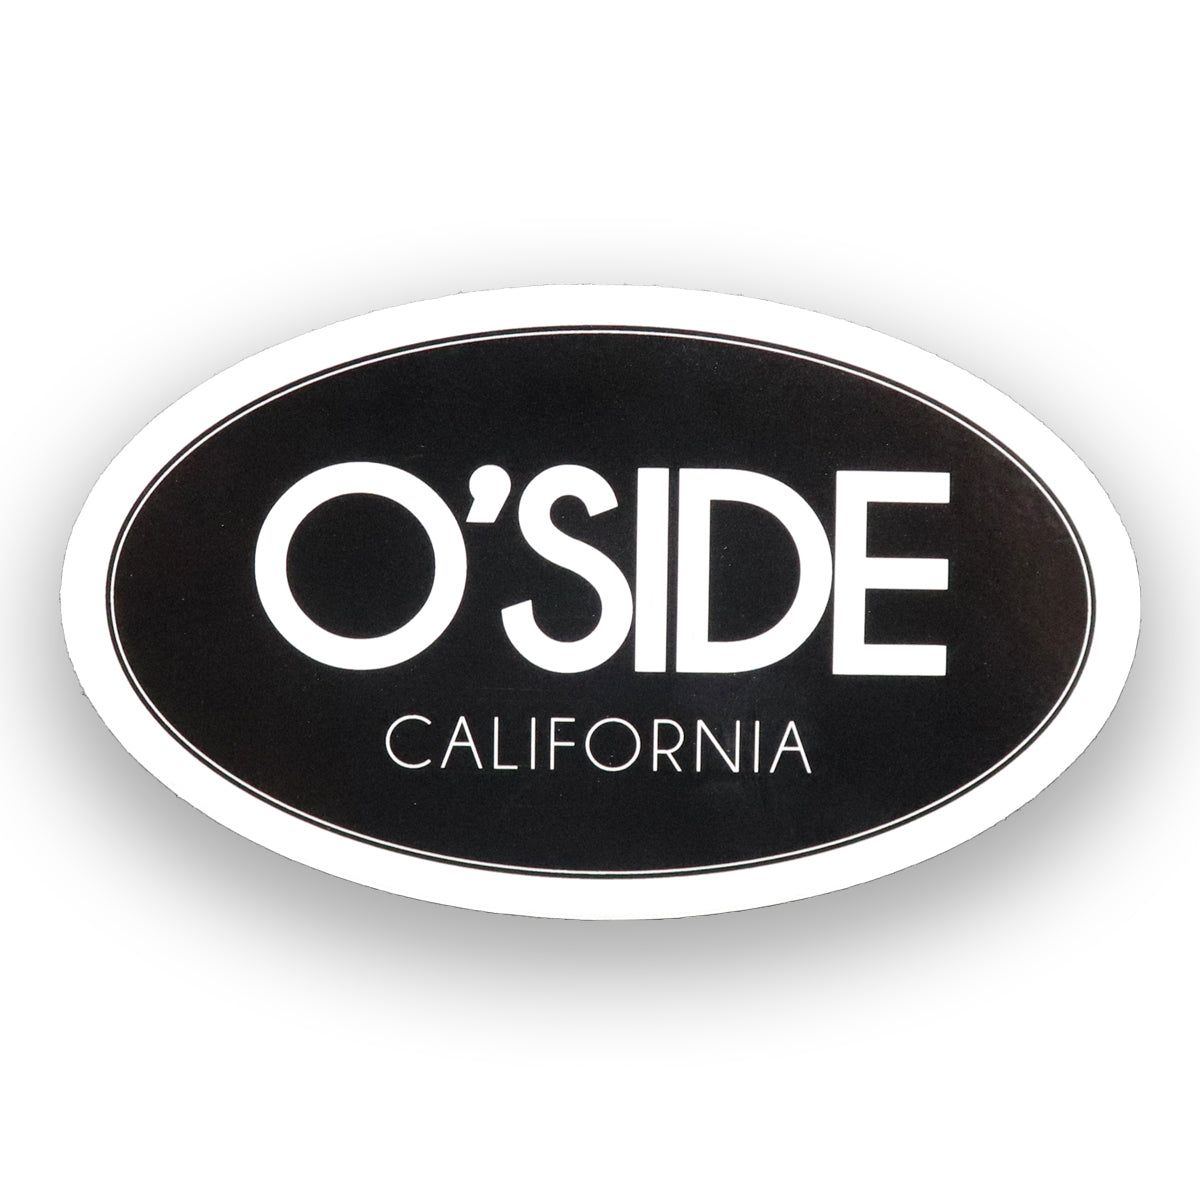 Oceanside California sticker. Black and white classic sticker with O'side printed in white block letters and California in white letters below. Oval shape black background and white letters. Sold by SDTrading Co.